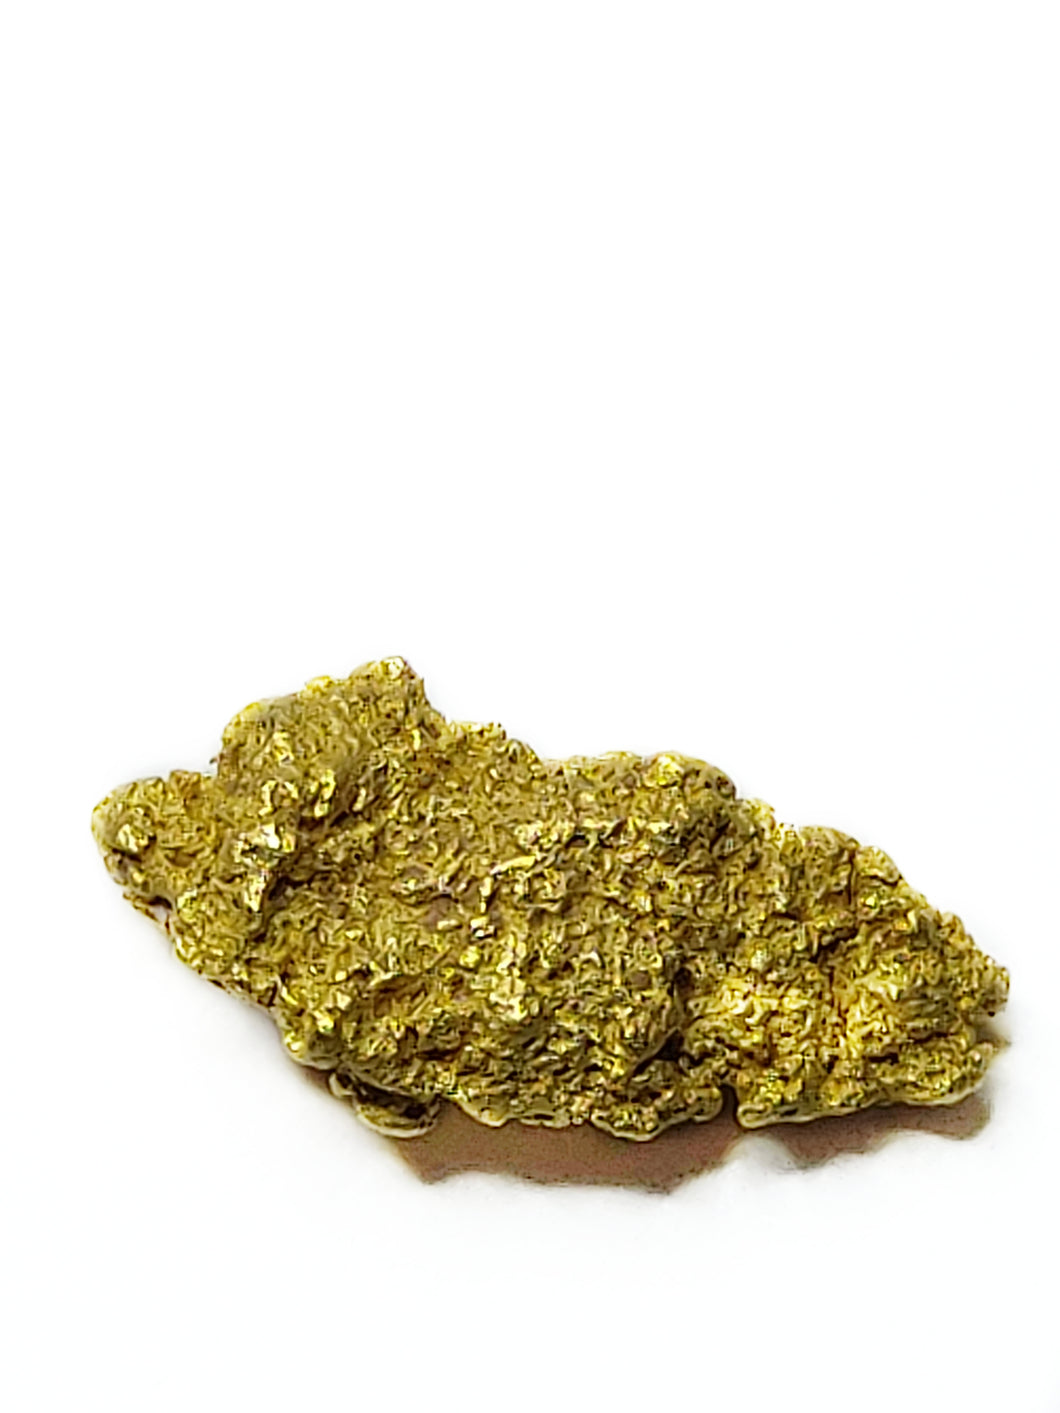 North Queensland Gold Nugget 1.347g